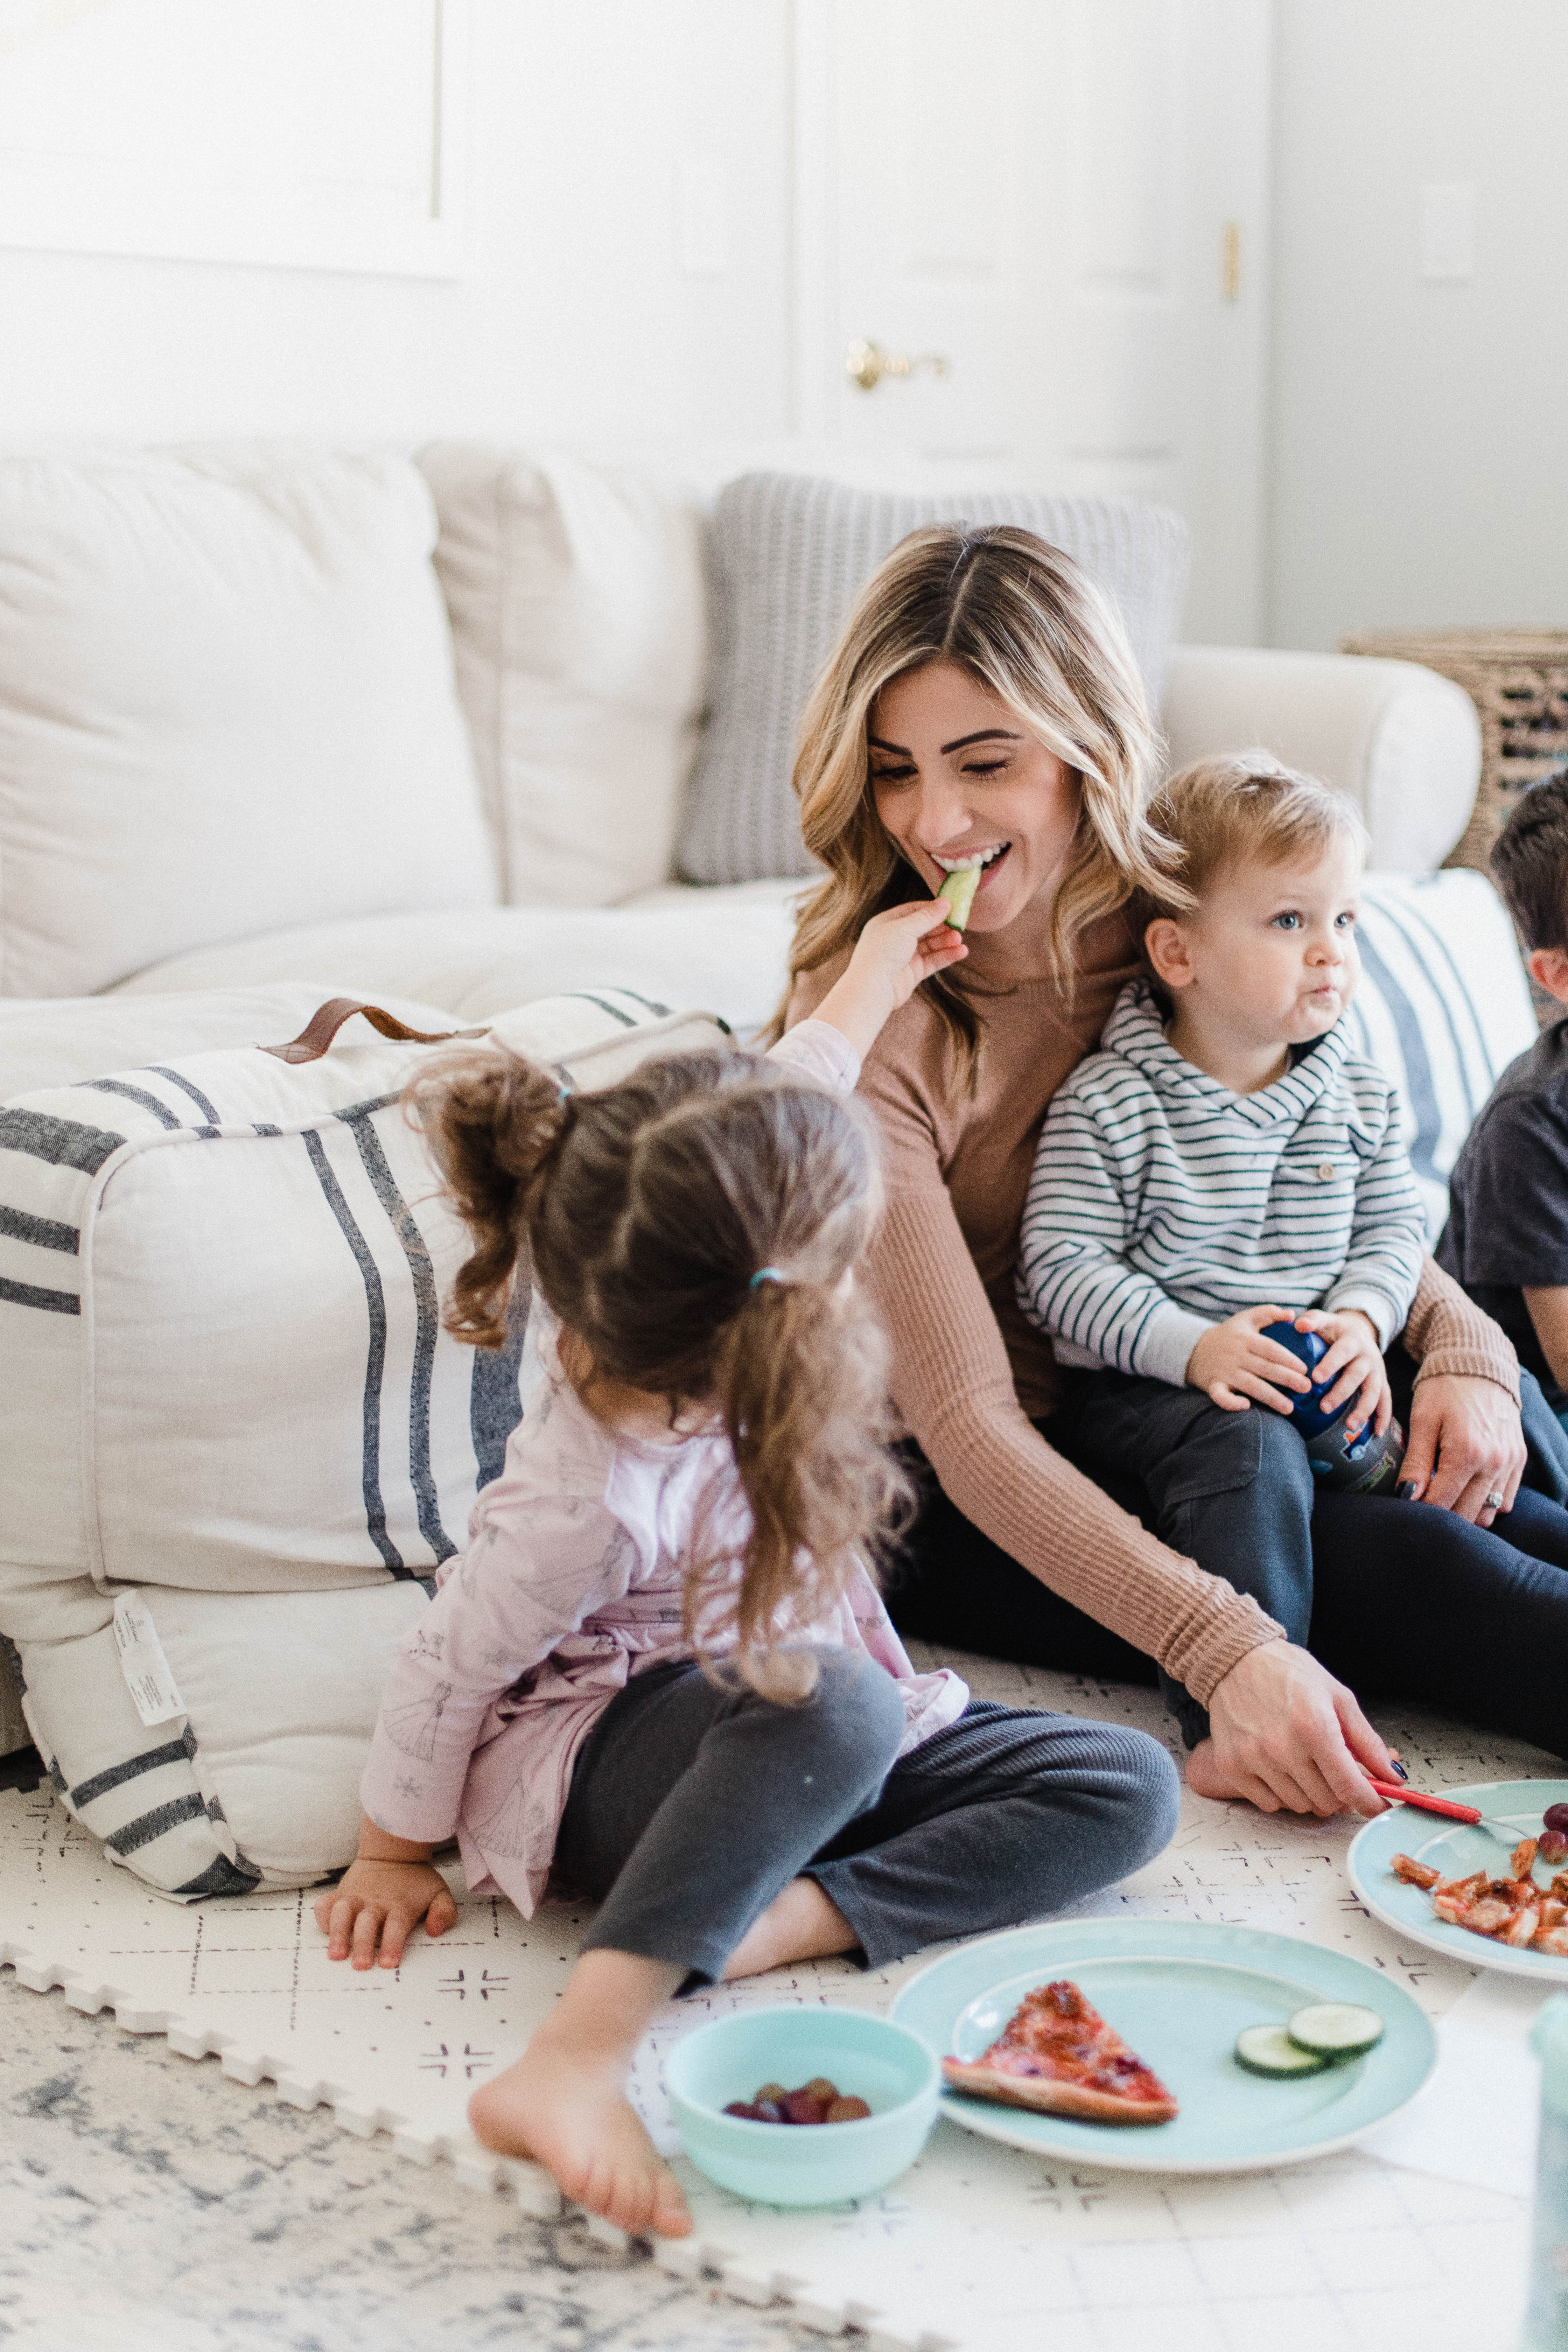 Connecticut life and style blogger Lauren McBride shares her family's weekly Friday night tradition and how Disney+ plays a part in it!